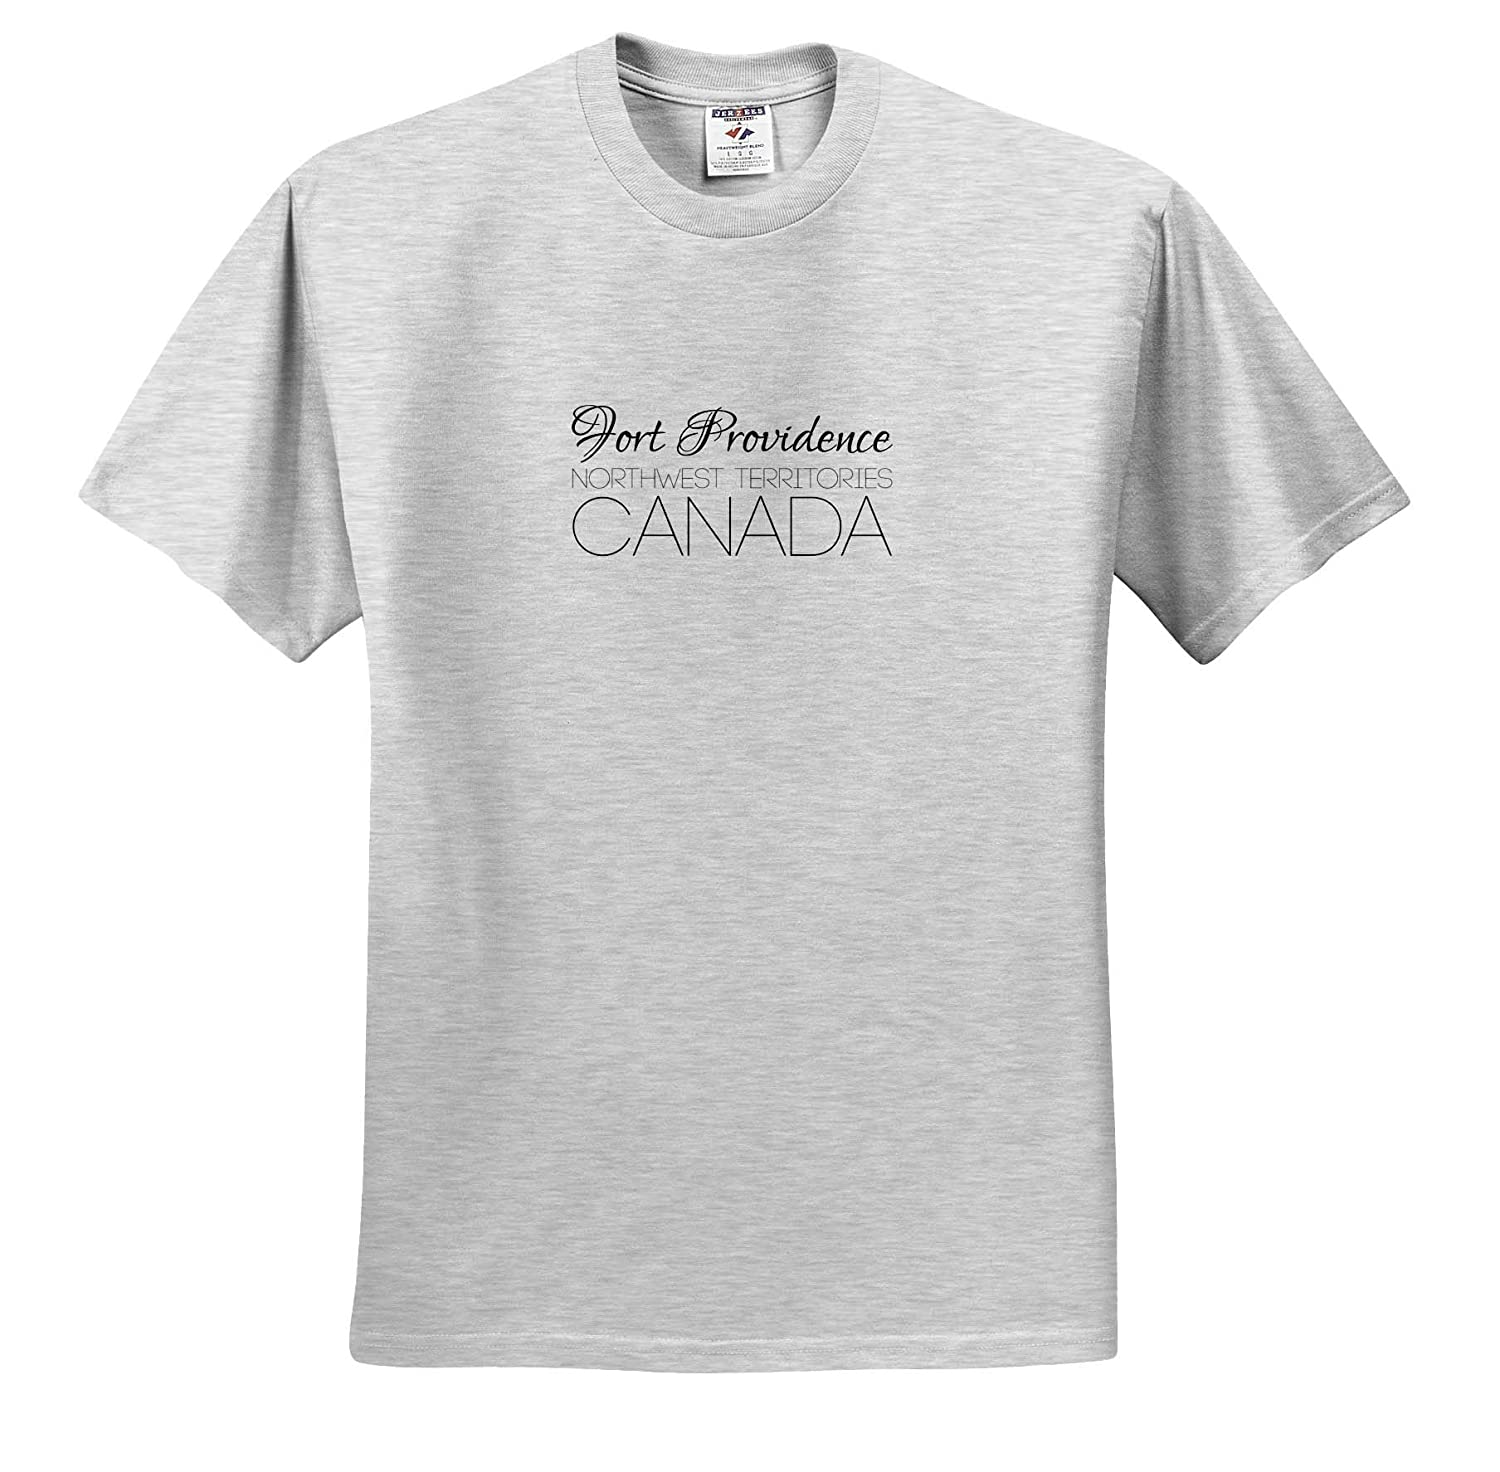 3dRose Alexis Design Canada T-Shirts Canadian Cities Fort Providence Northwest Territories Patriot Home Town Gift